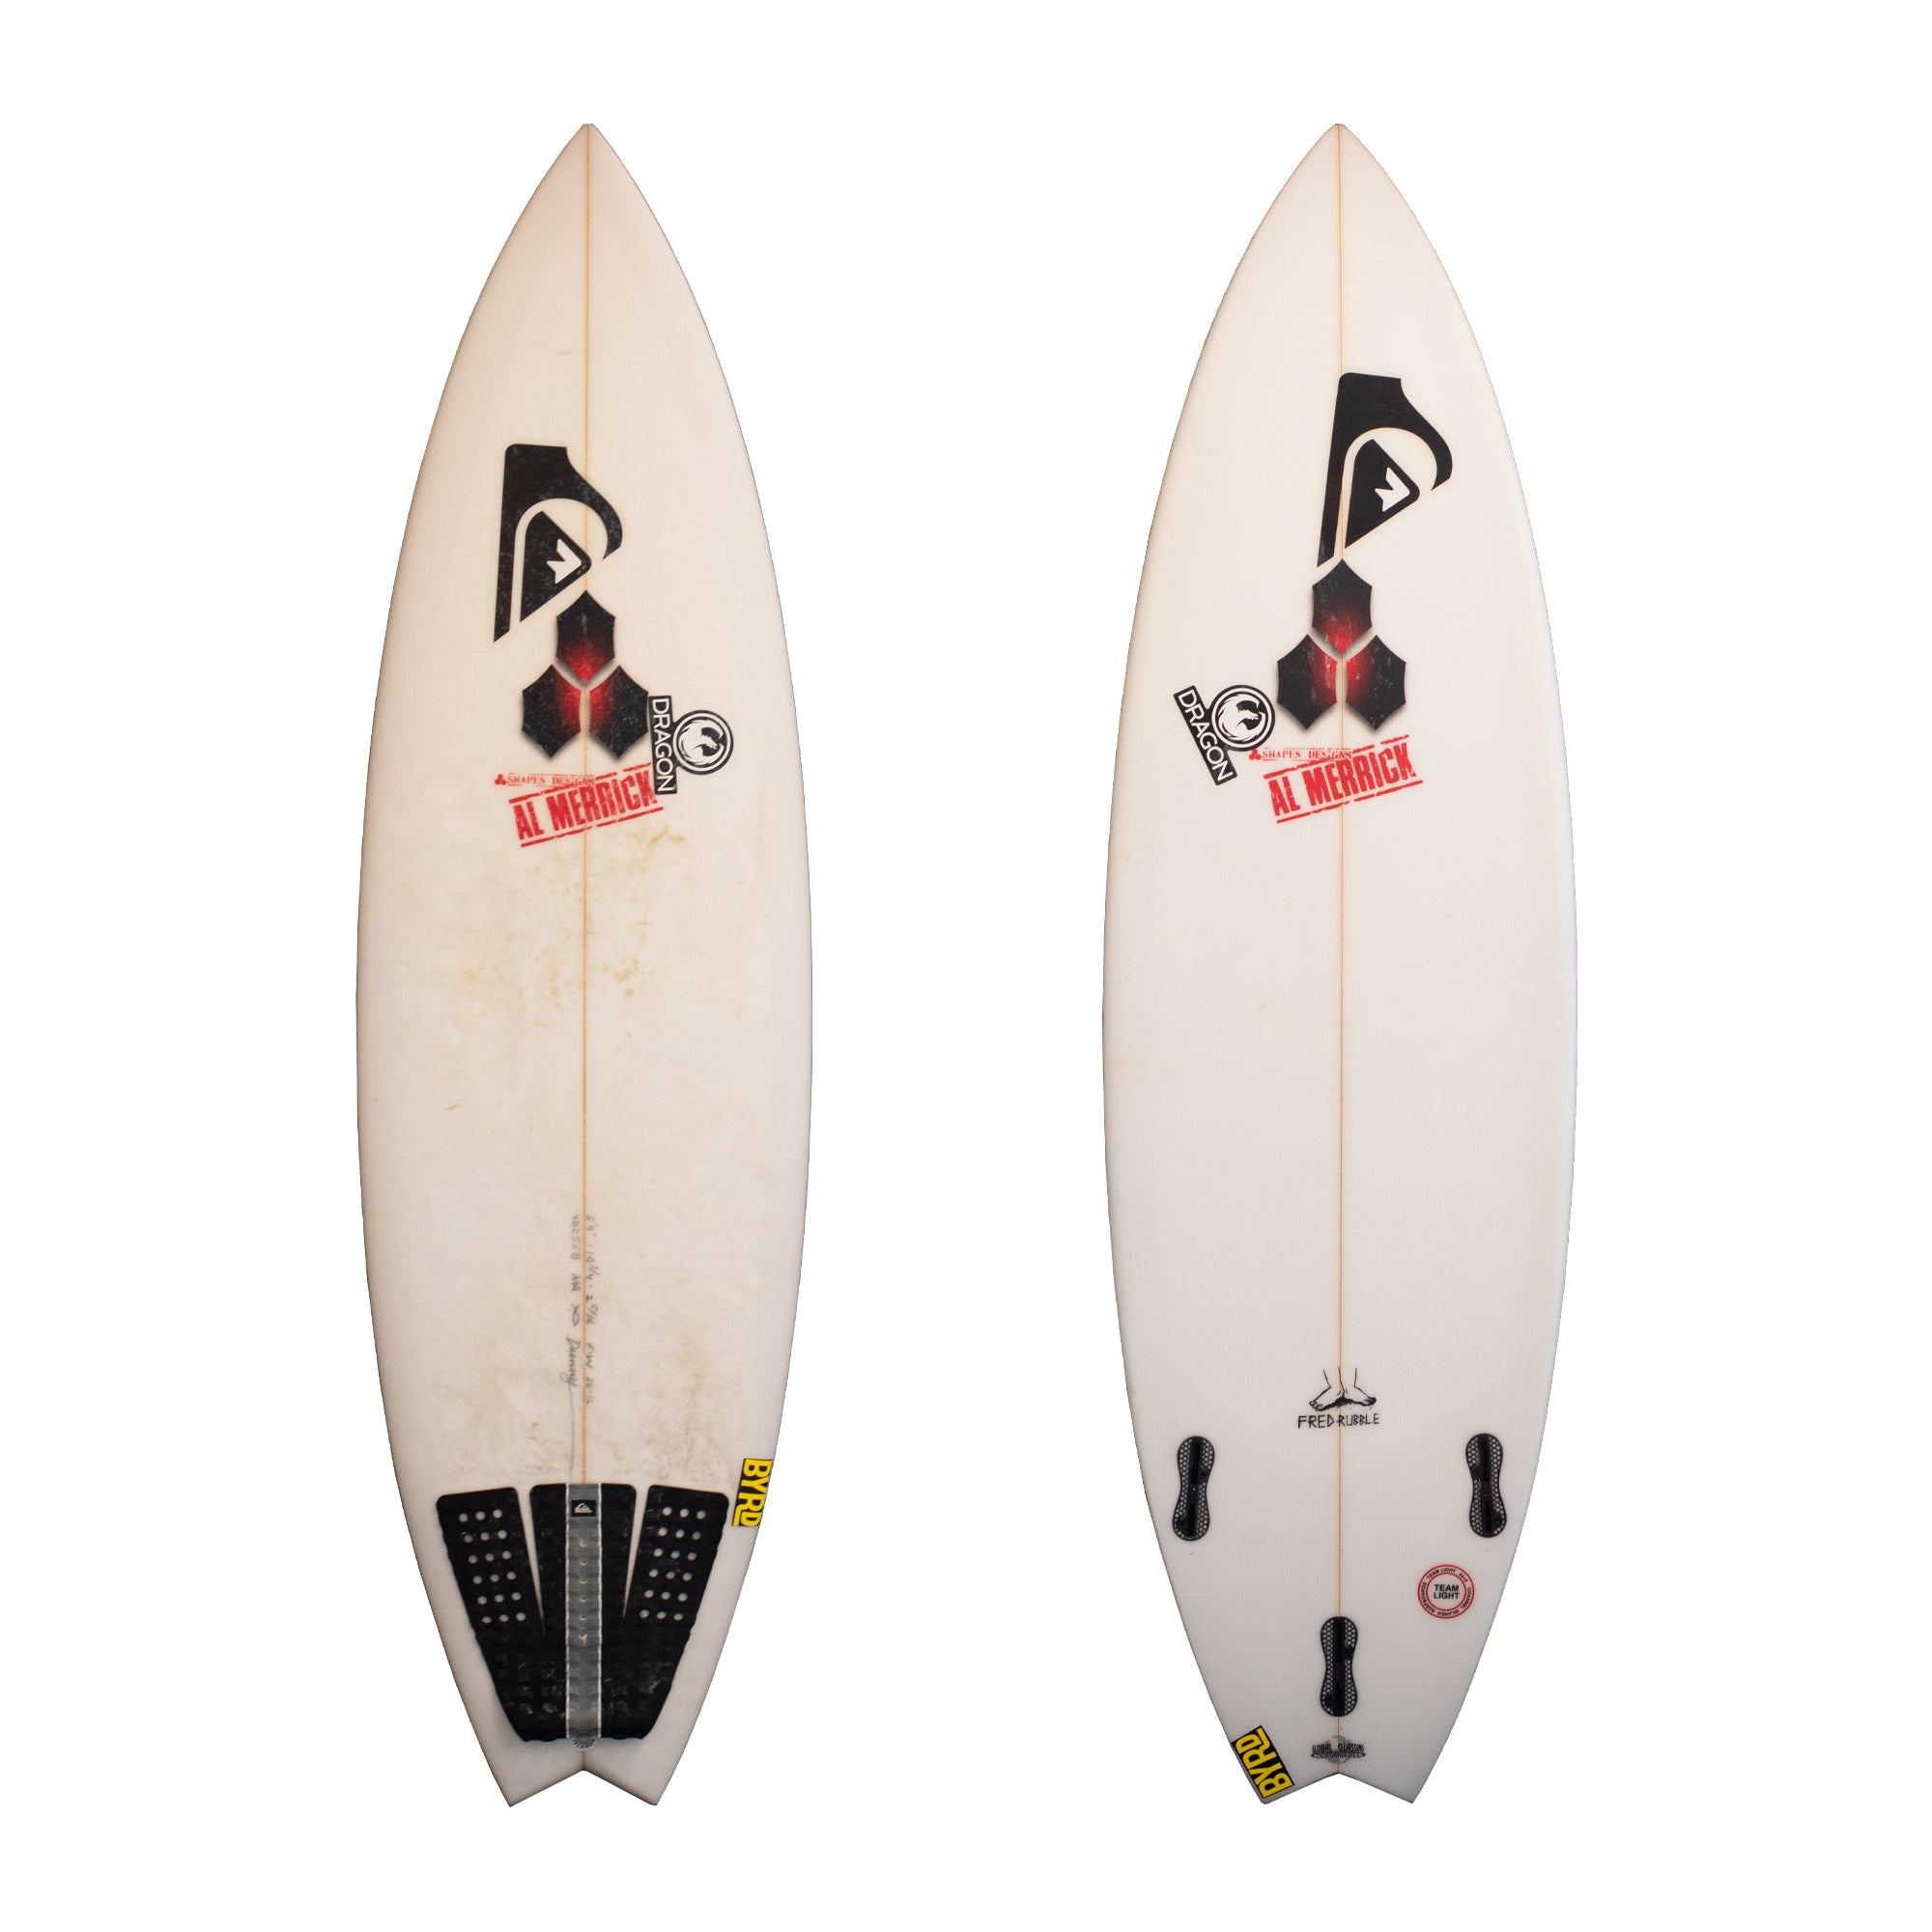 Channel Islands Fred Rubble 5'9 Used Surfboard